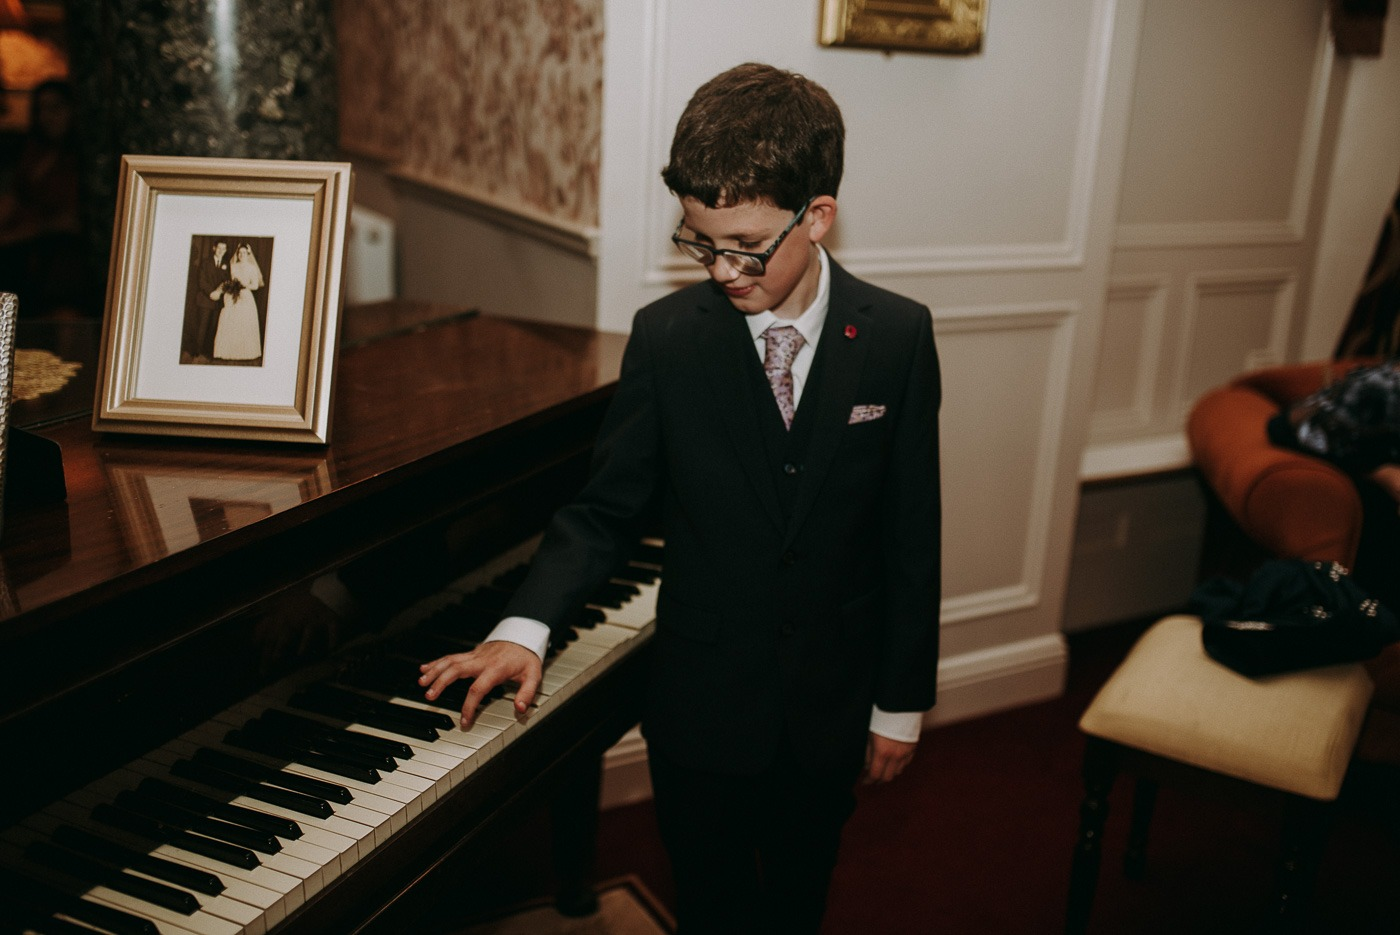 A man standing in front of a piano